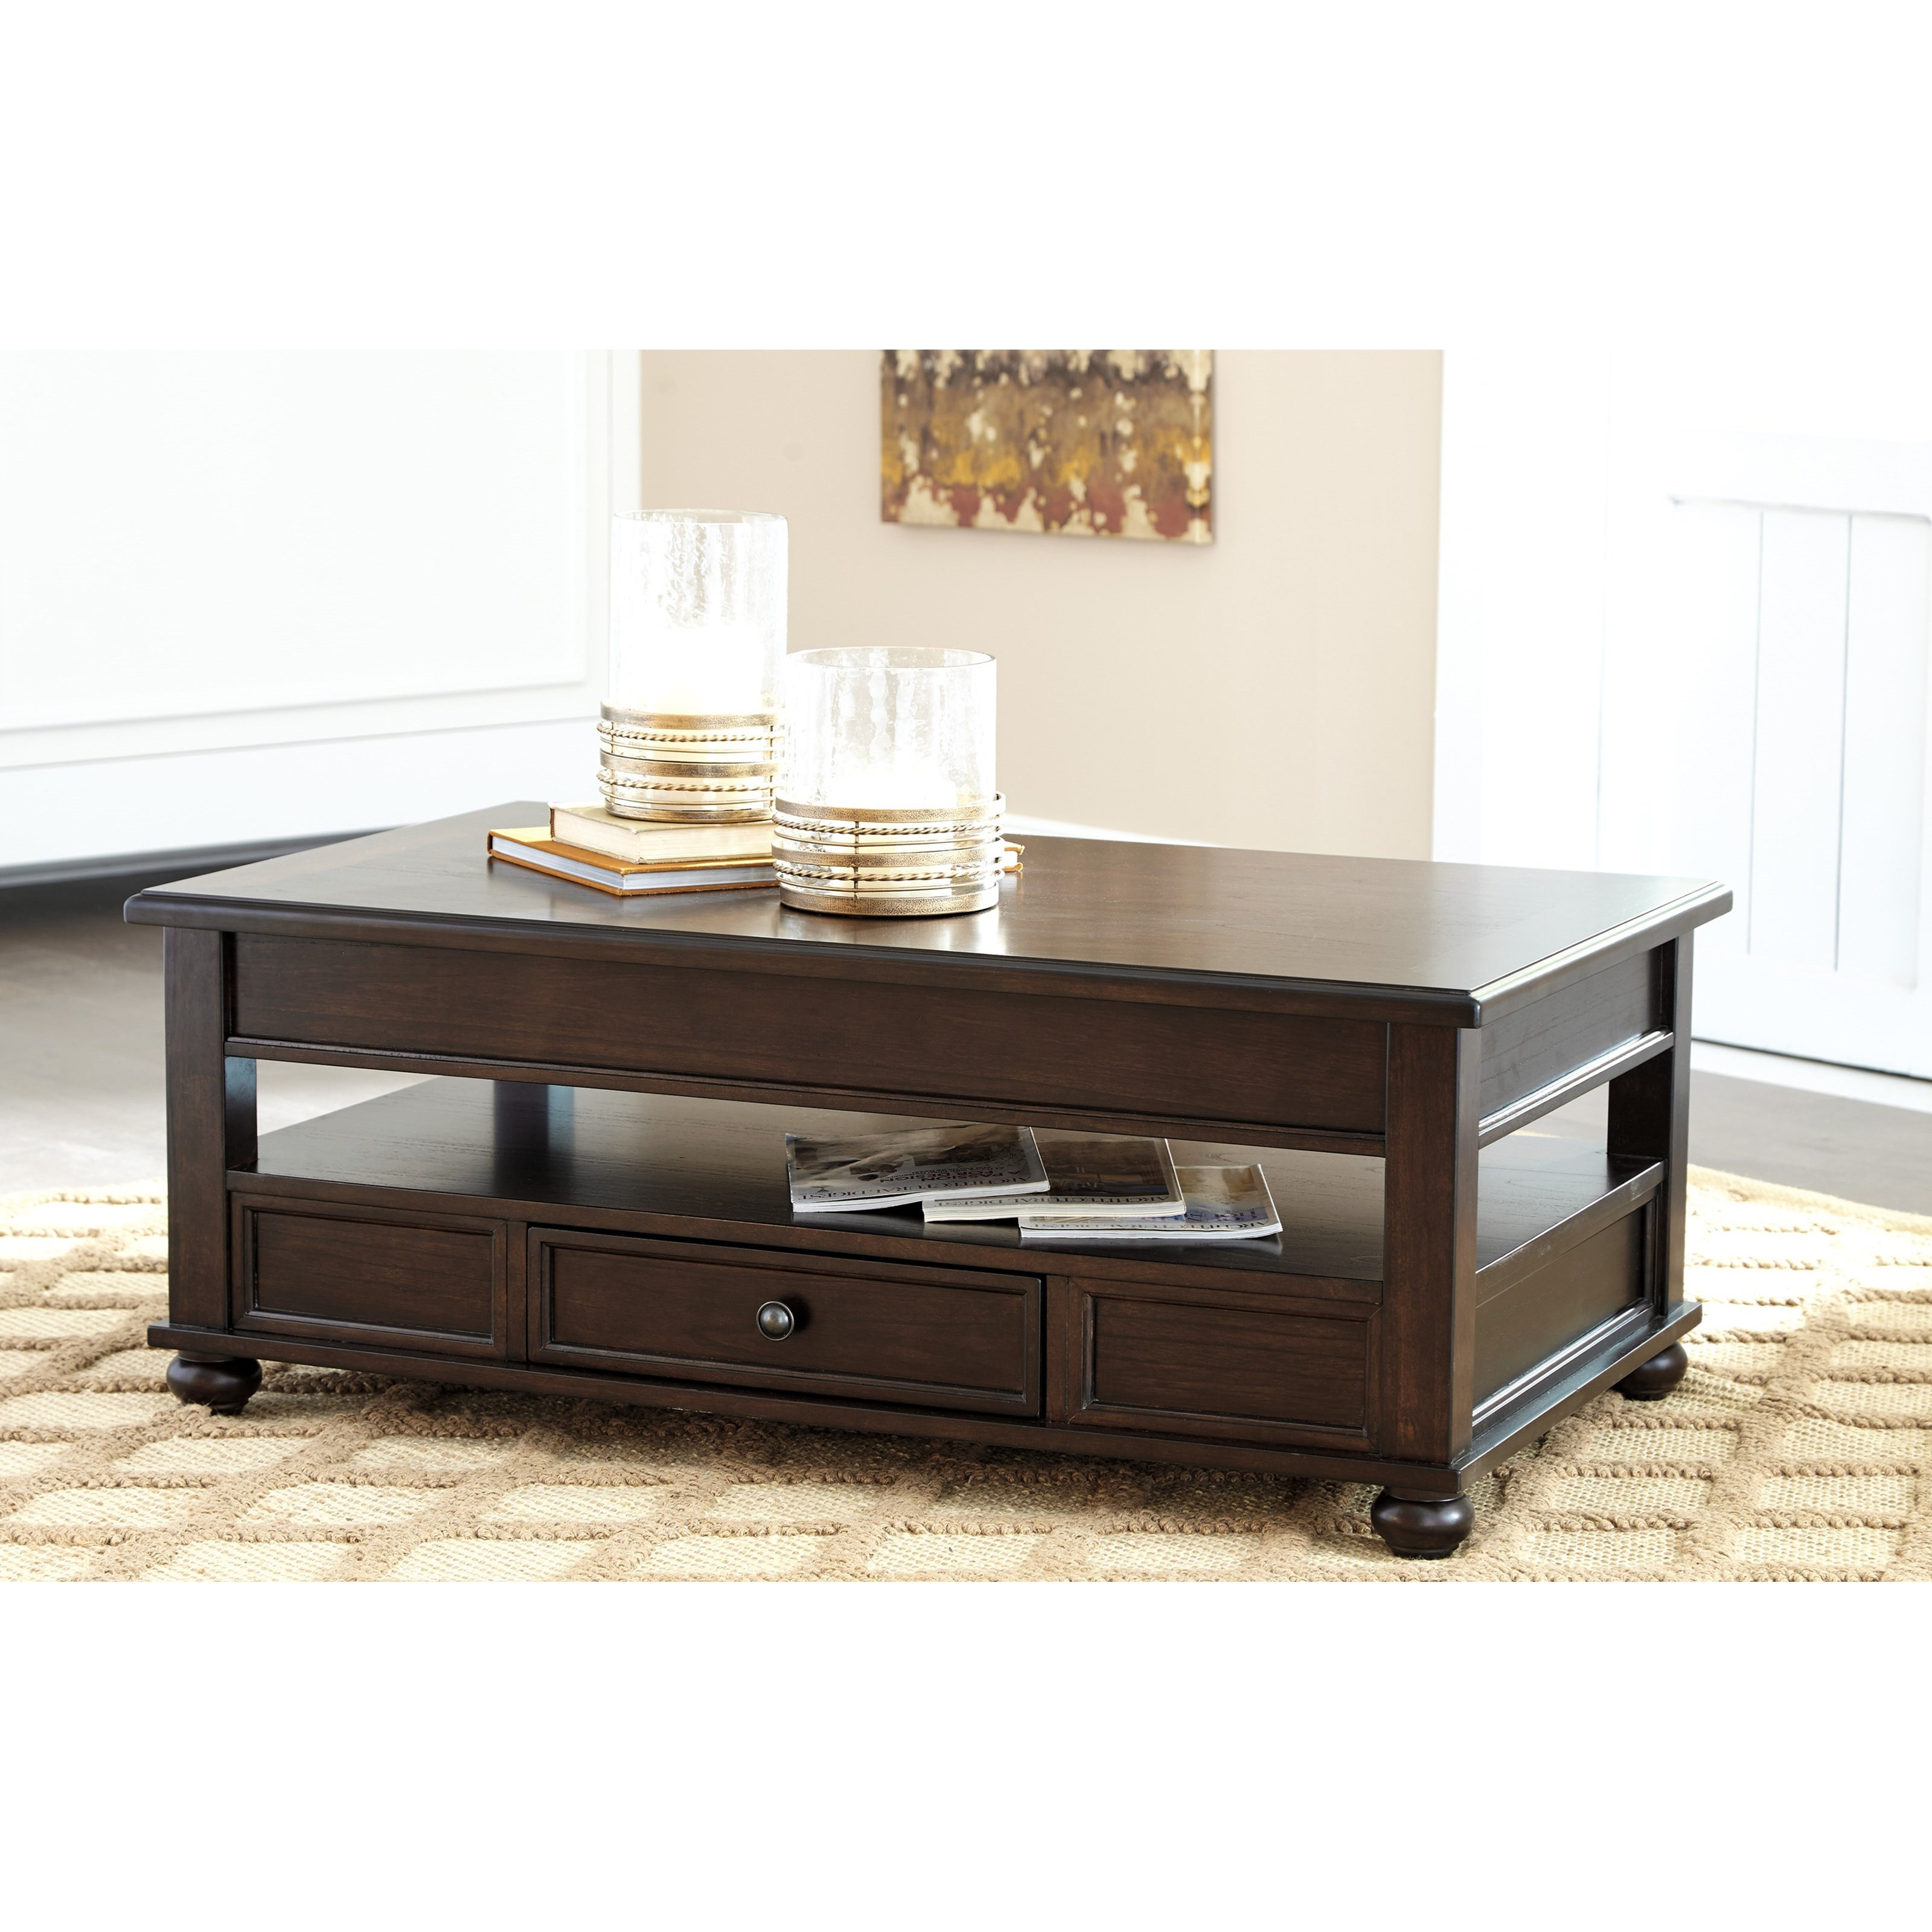 Ashley Cherry Wood Coffee Table: Ashley Signature Design Barilanni T934-9 Lift Top Cocktail